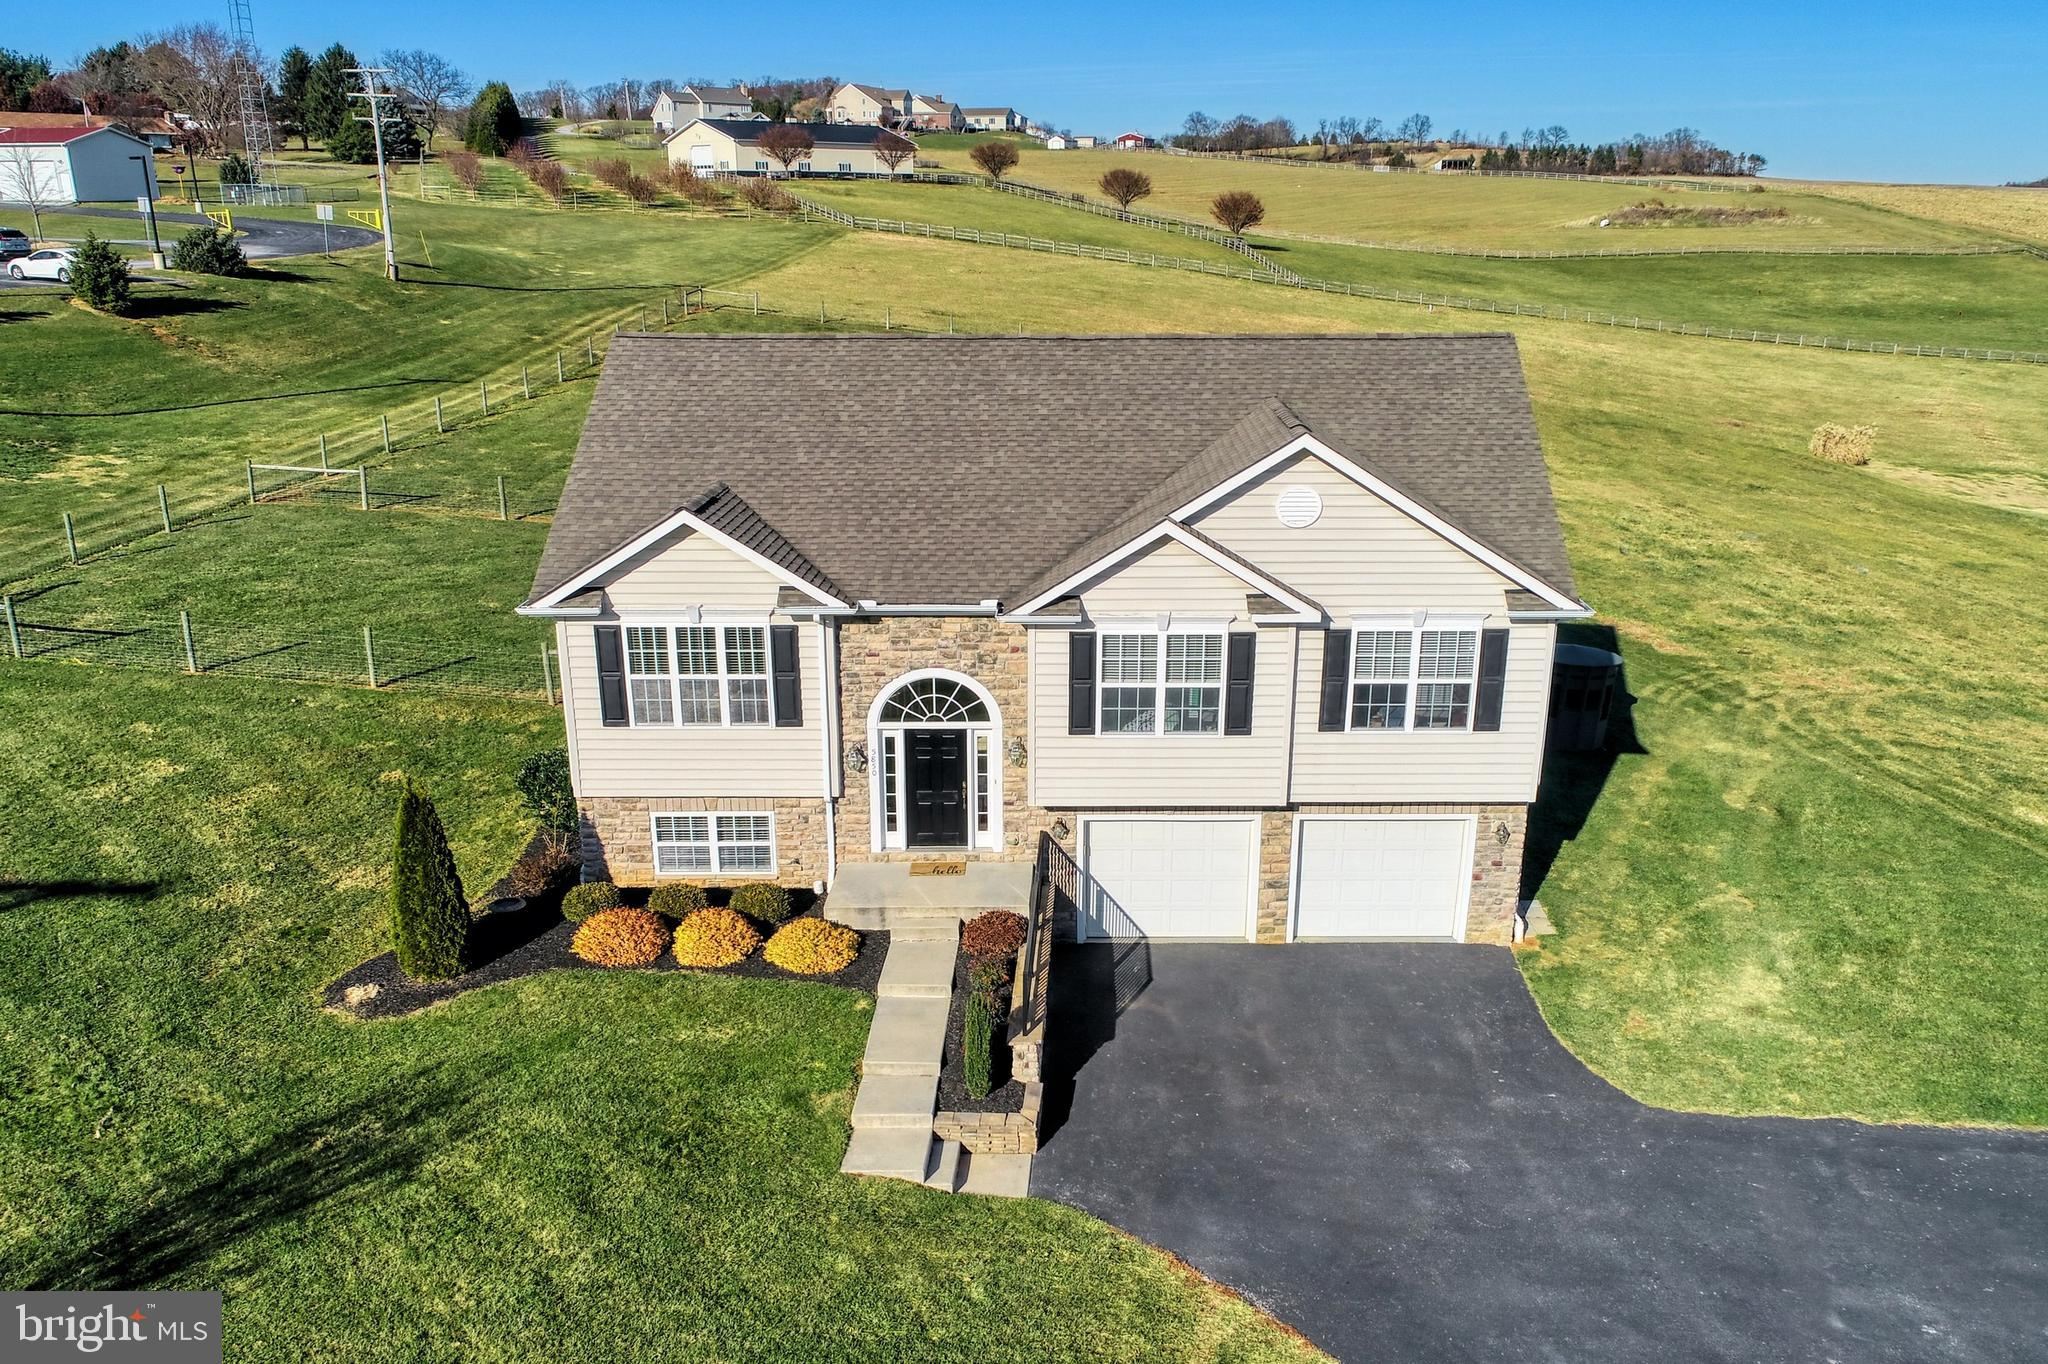 5850 BLOOMING GROVE ROAD, GLENVILLE, PA 17329